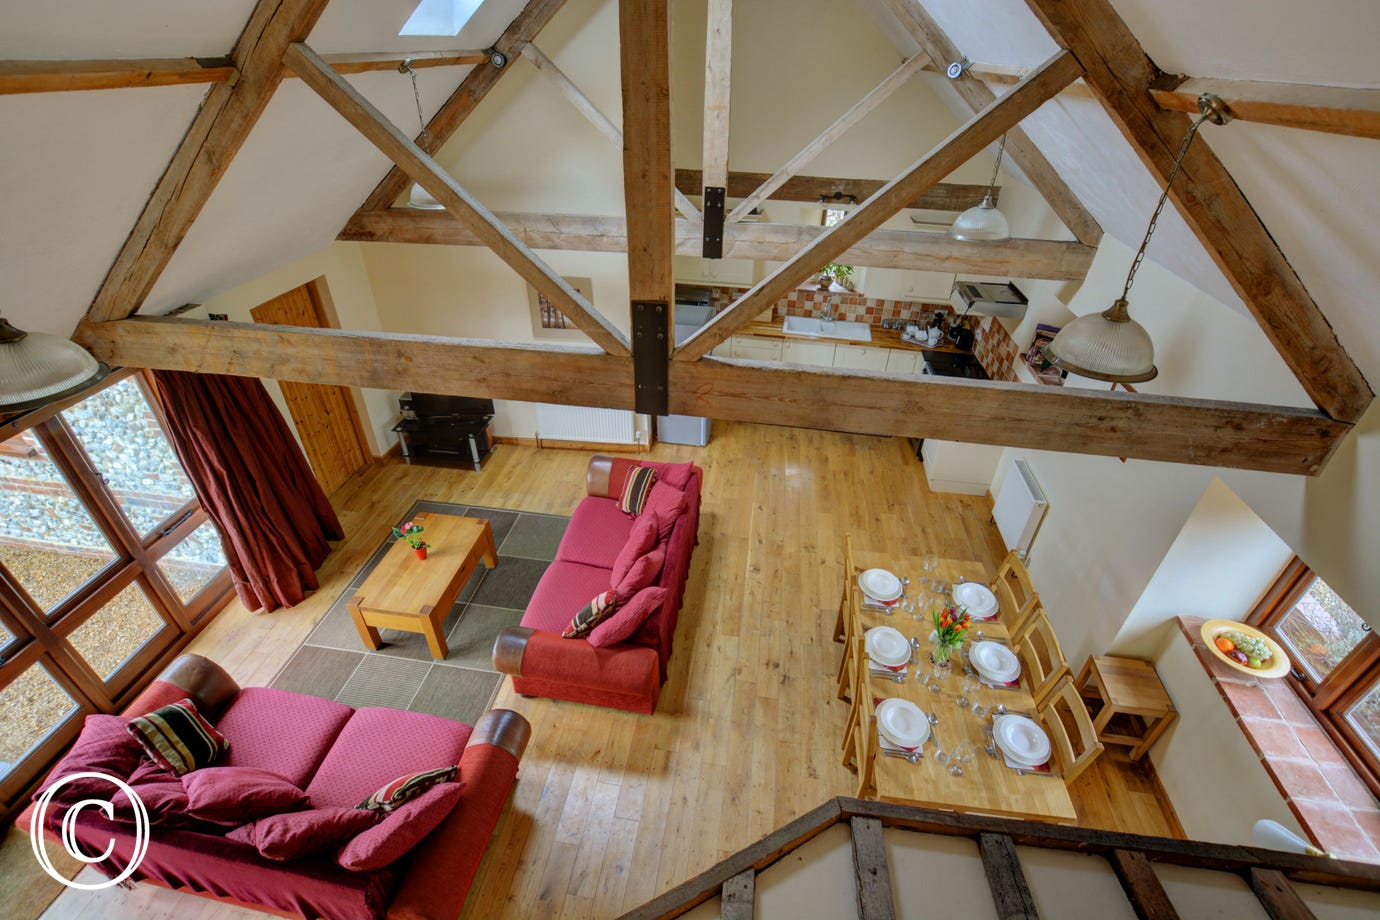 View from the mezzanine showing beams and the spacious open plan living area